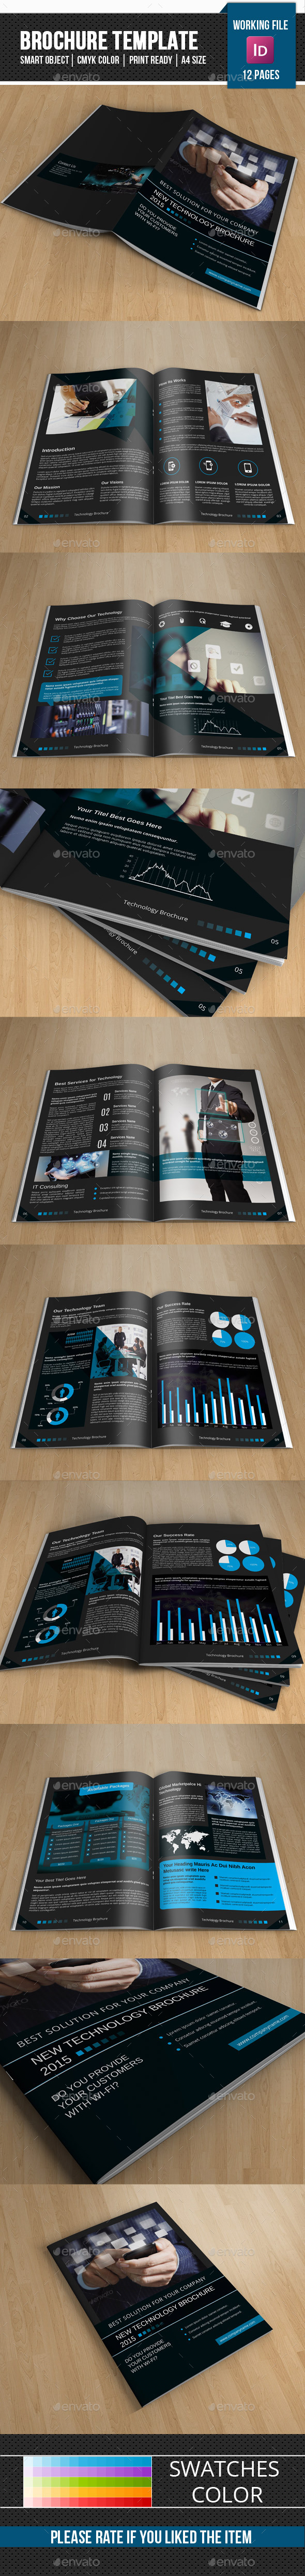 Technology Brochure Template-V265 - Corporate Brochures